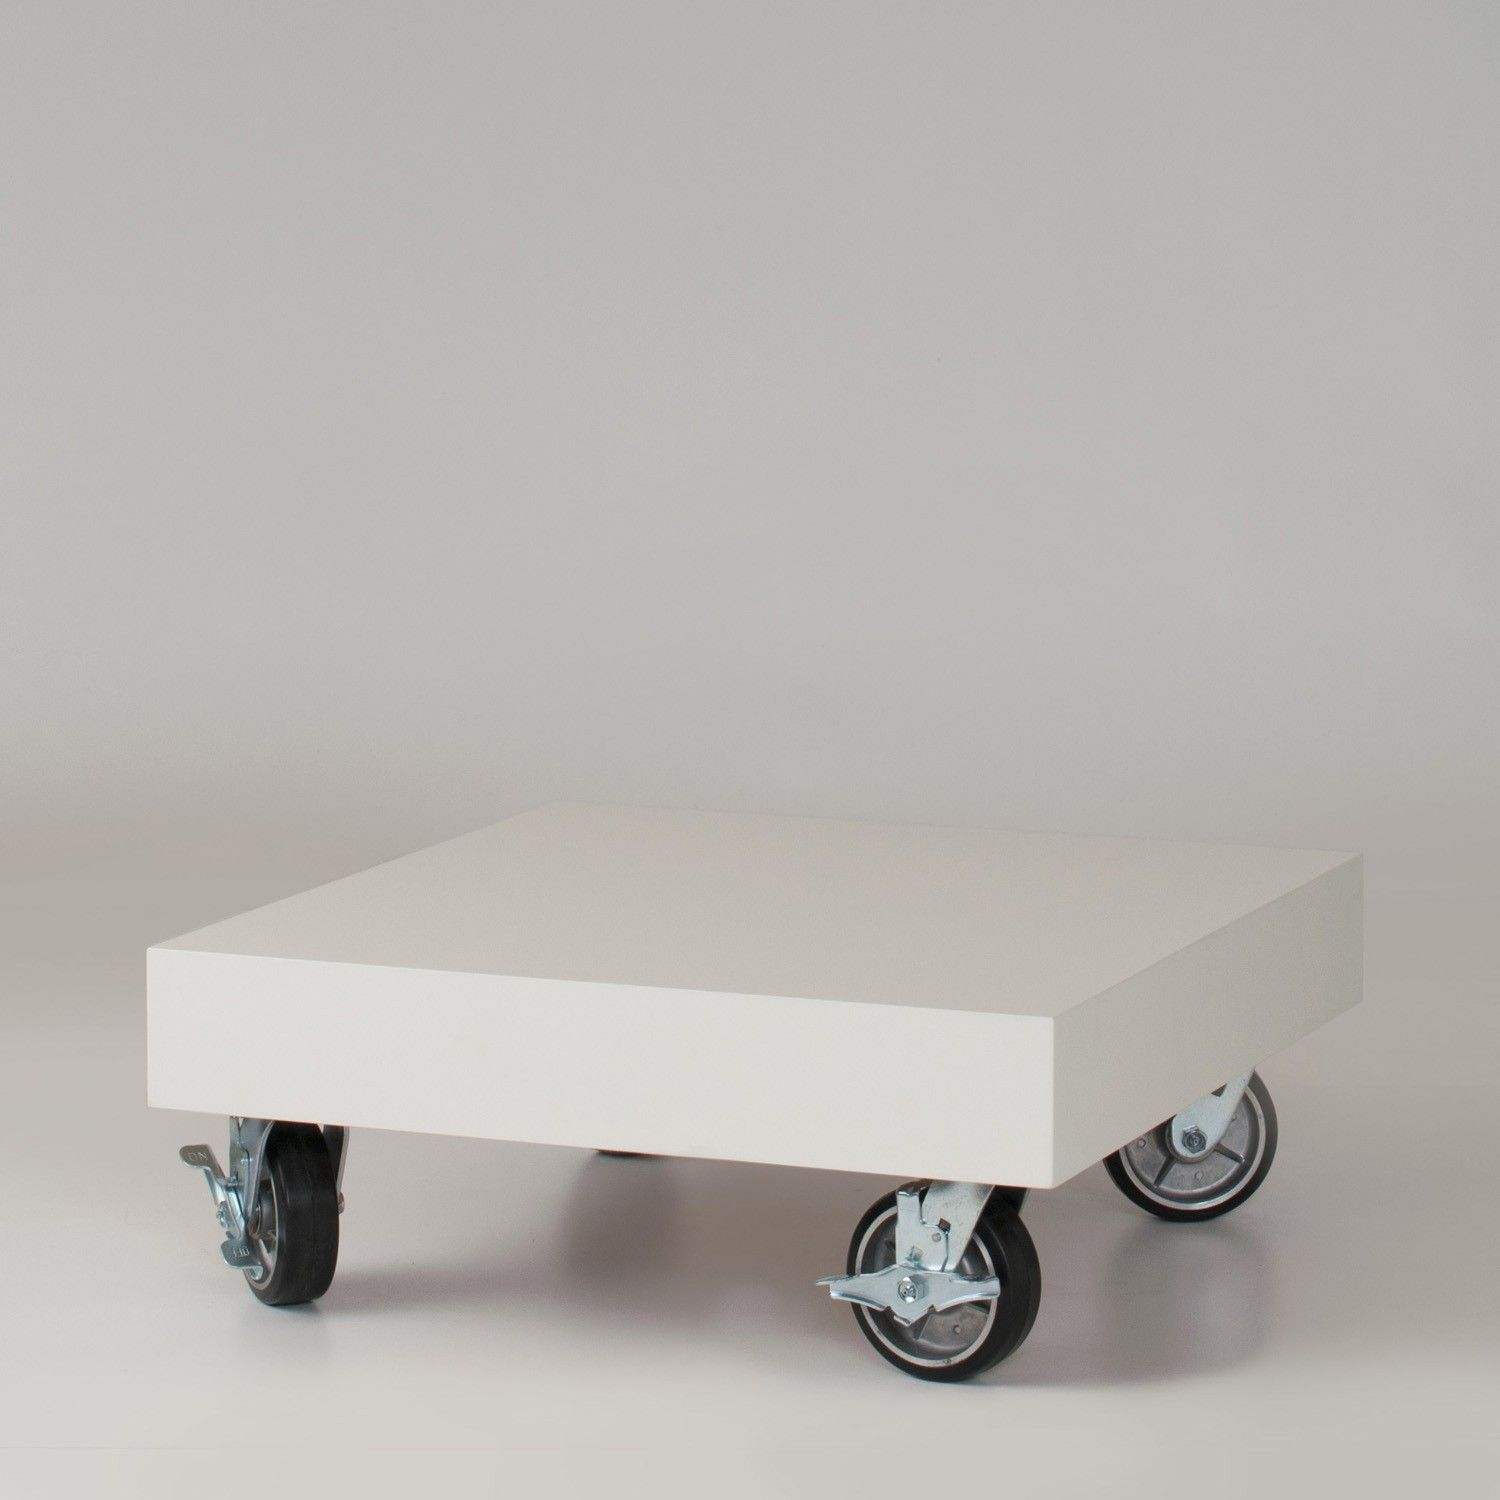 pop wheels Hi concept table rolls low profile on oversized aluminum